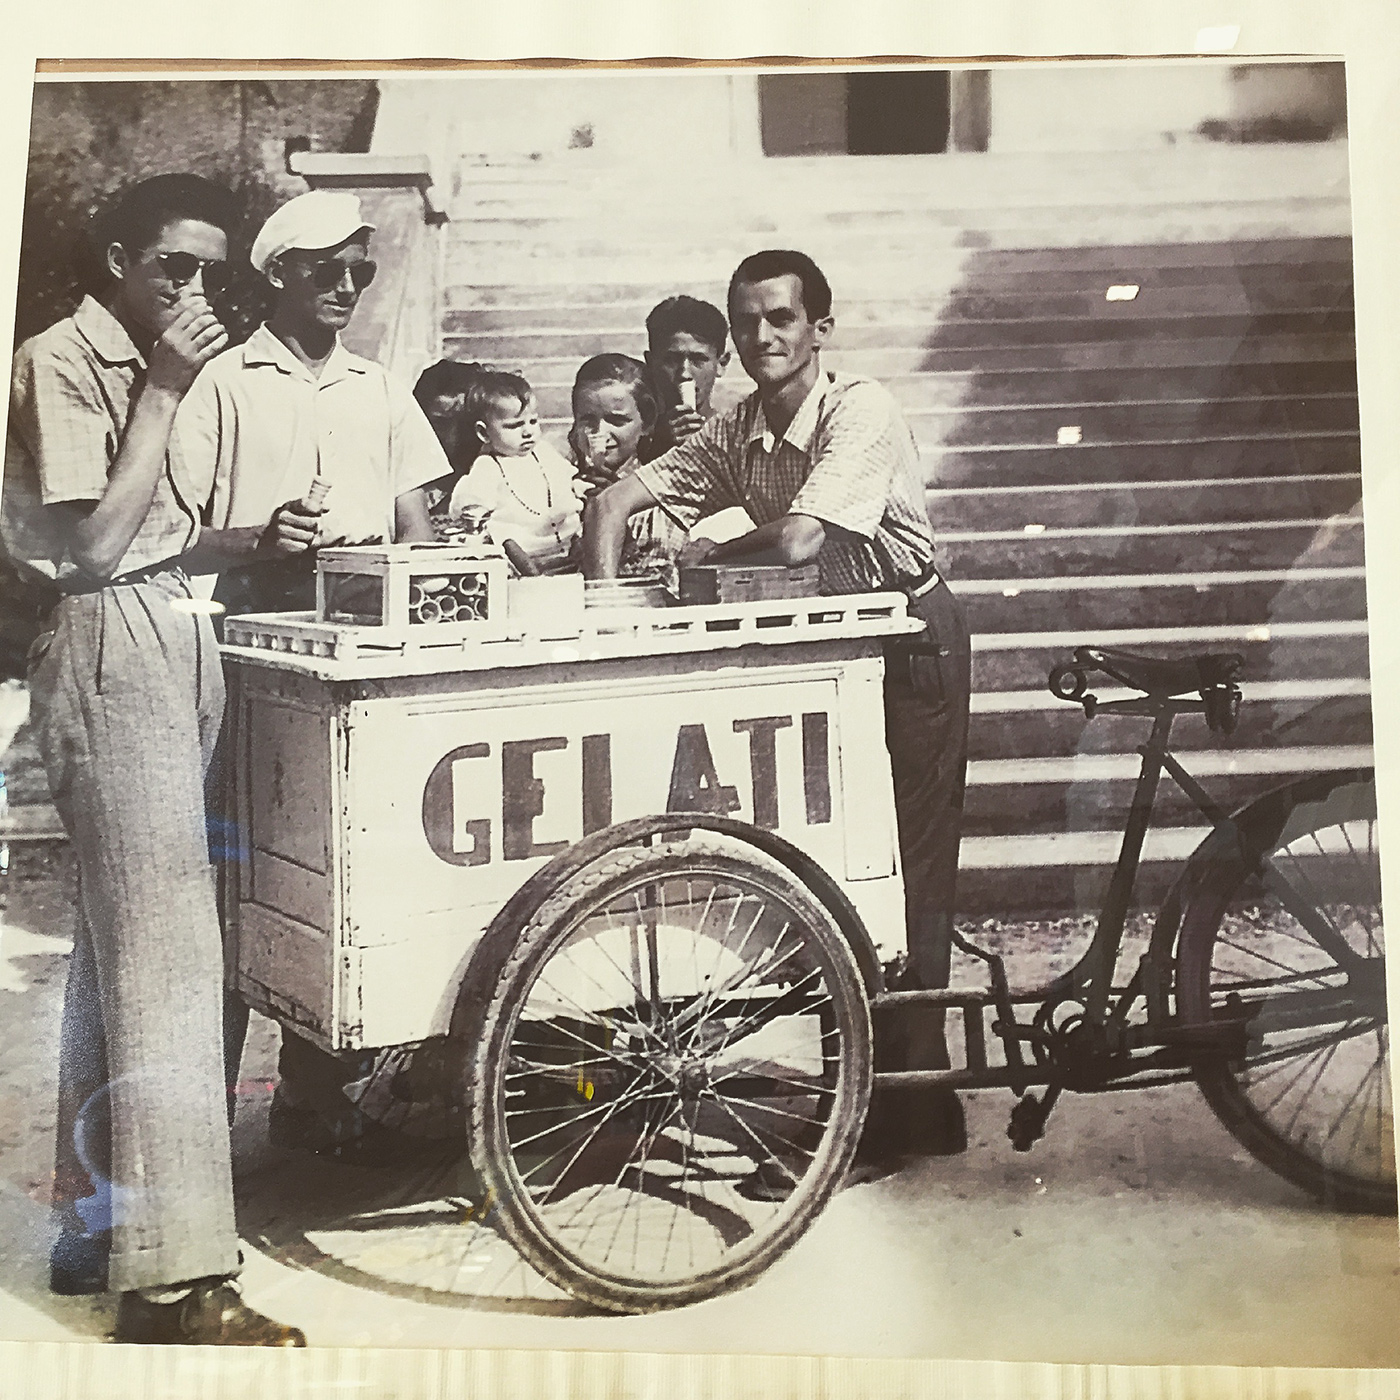 The history of the ice cream shop